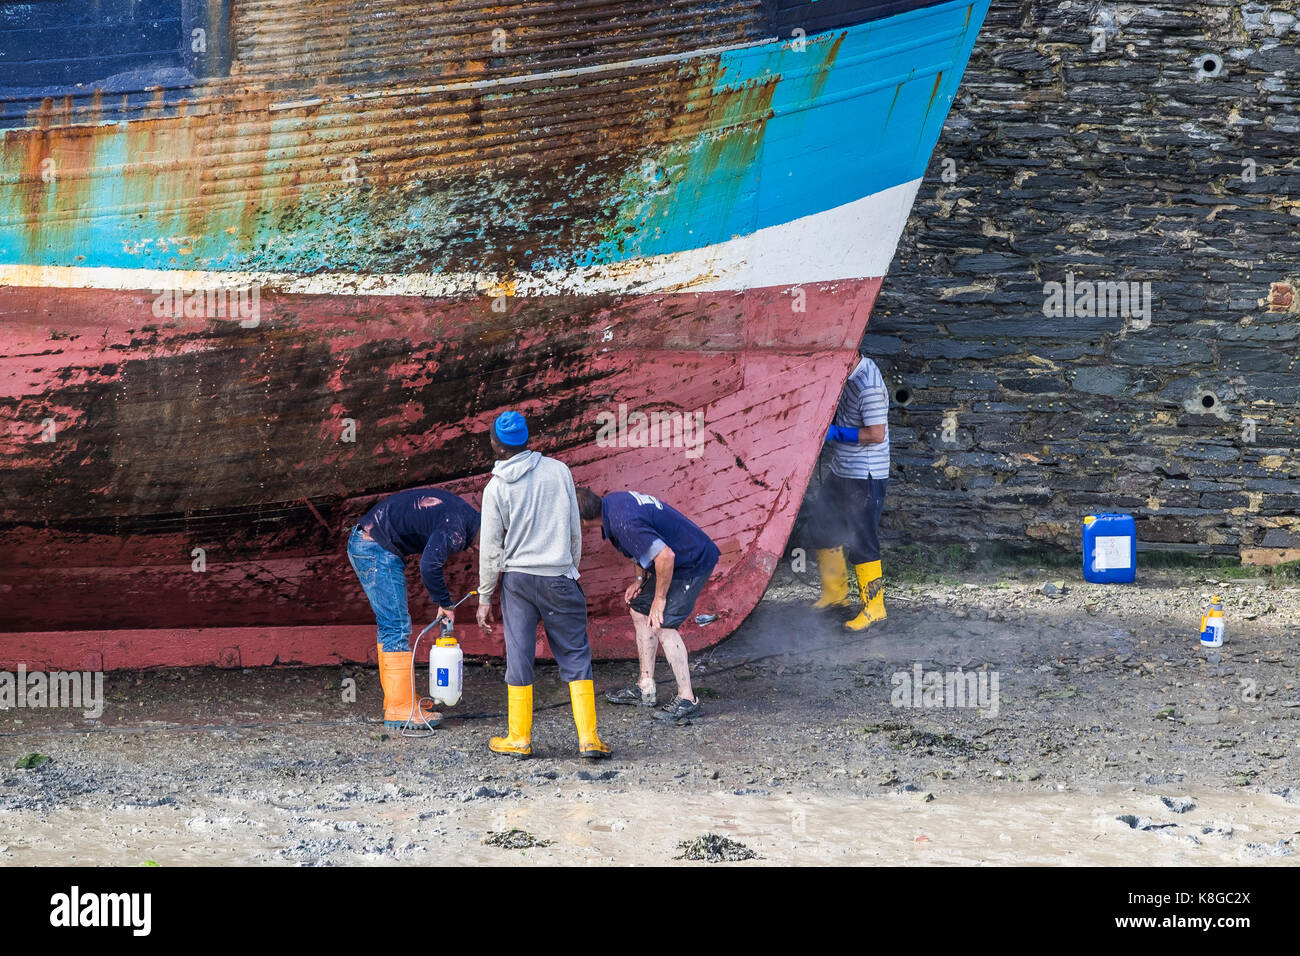 Fishing industry - workers inspecting the hull of a fishing trawler at low tide in Padstow Harbour on the North - Stock Image